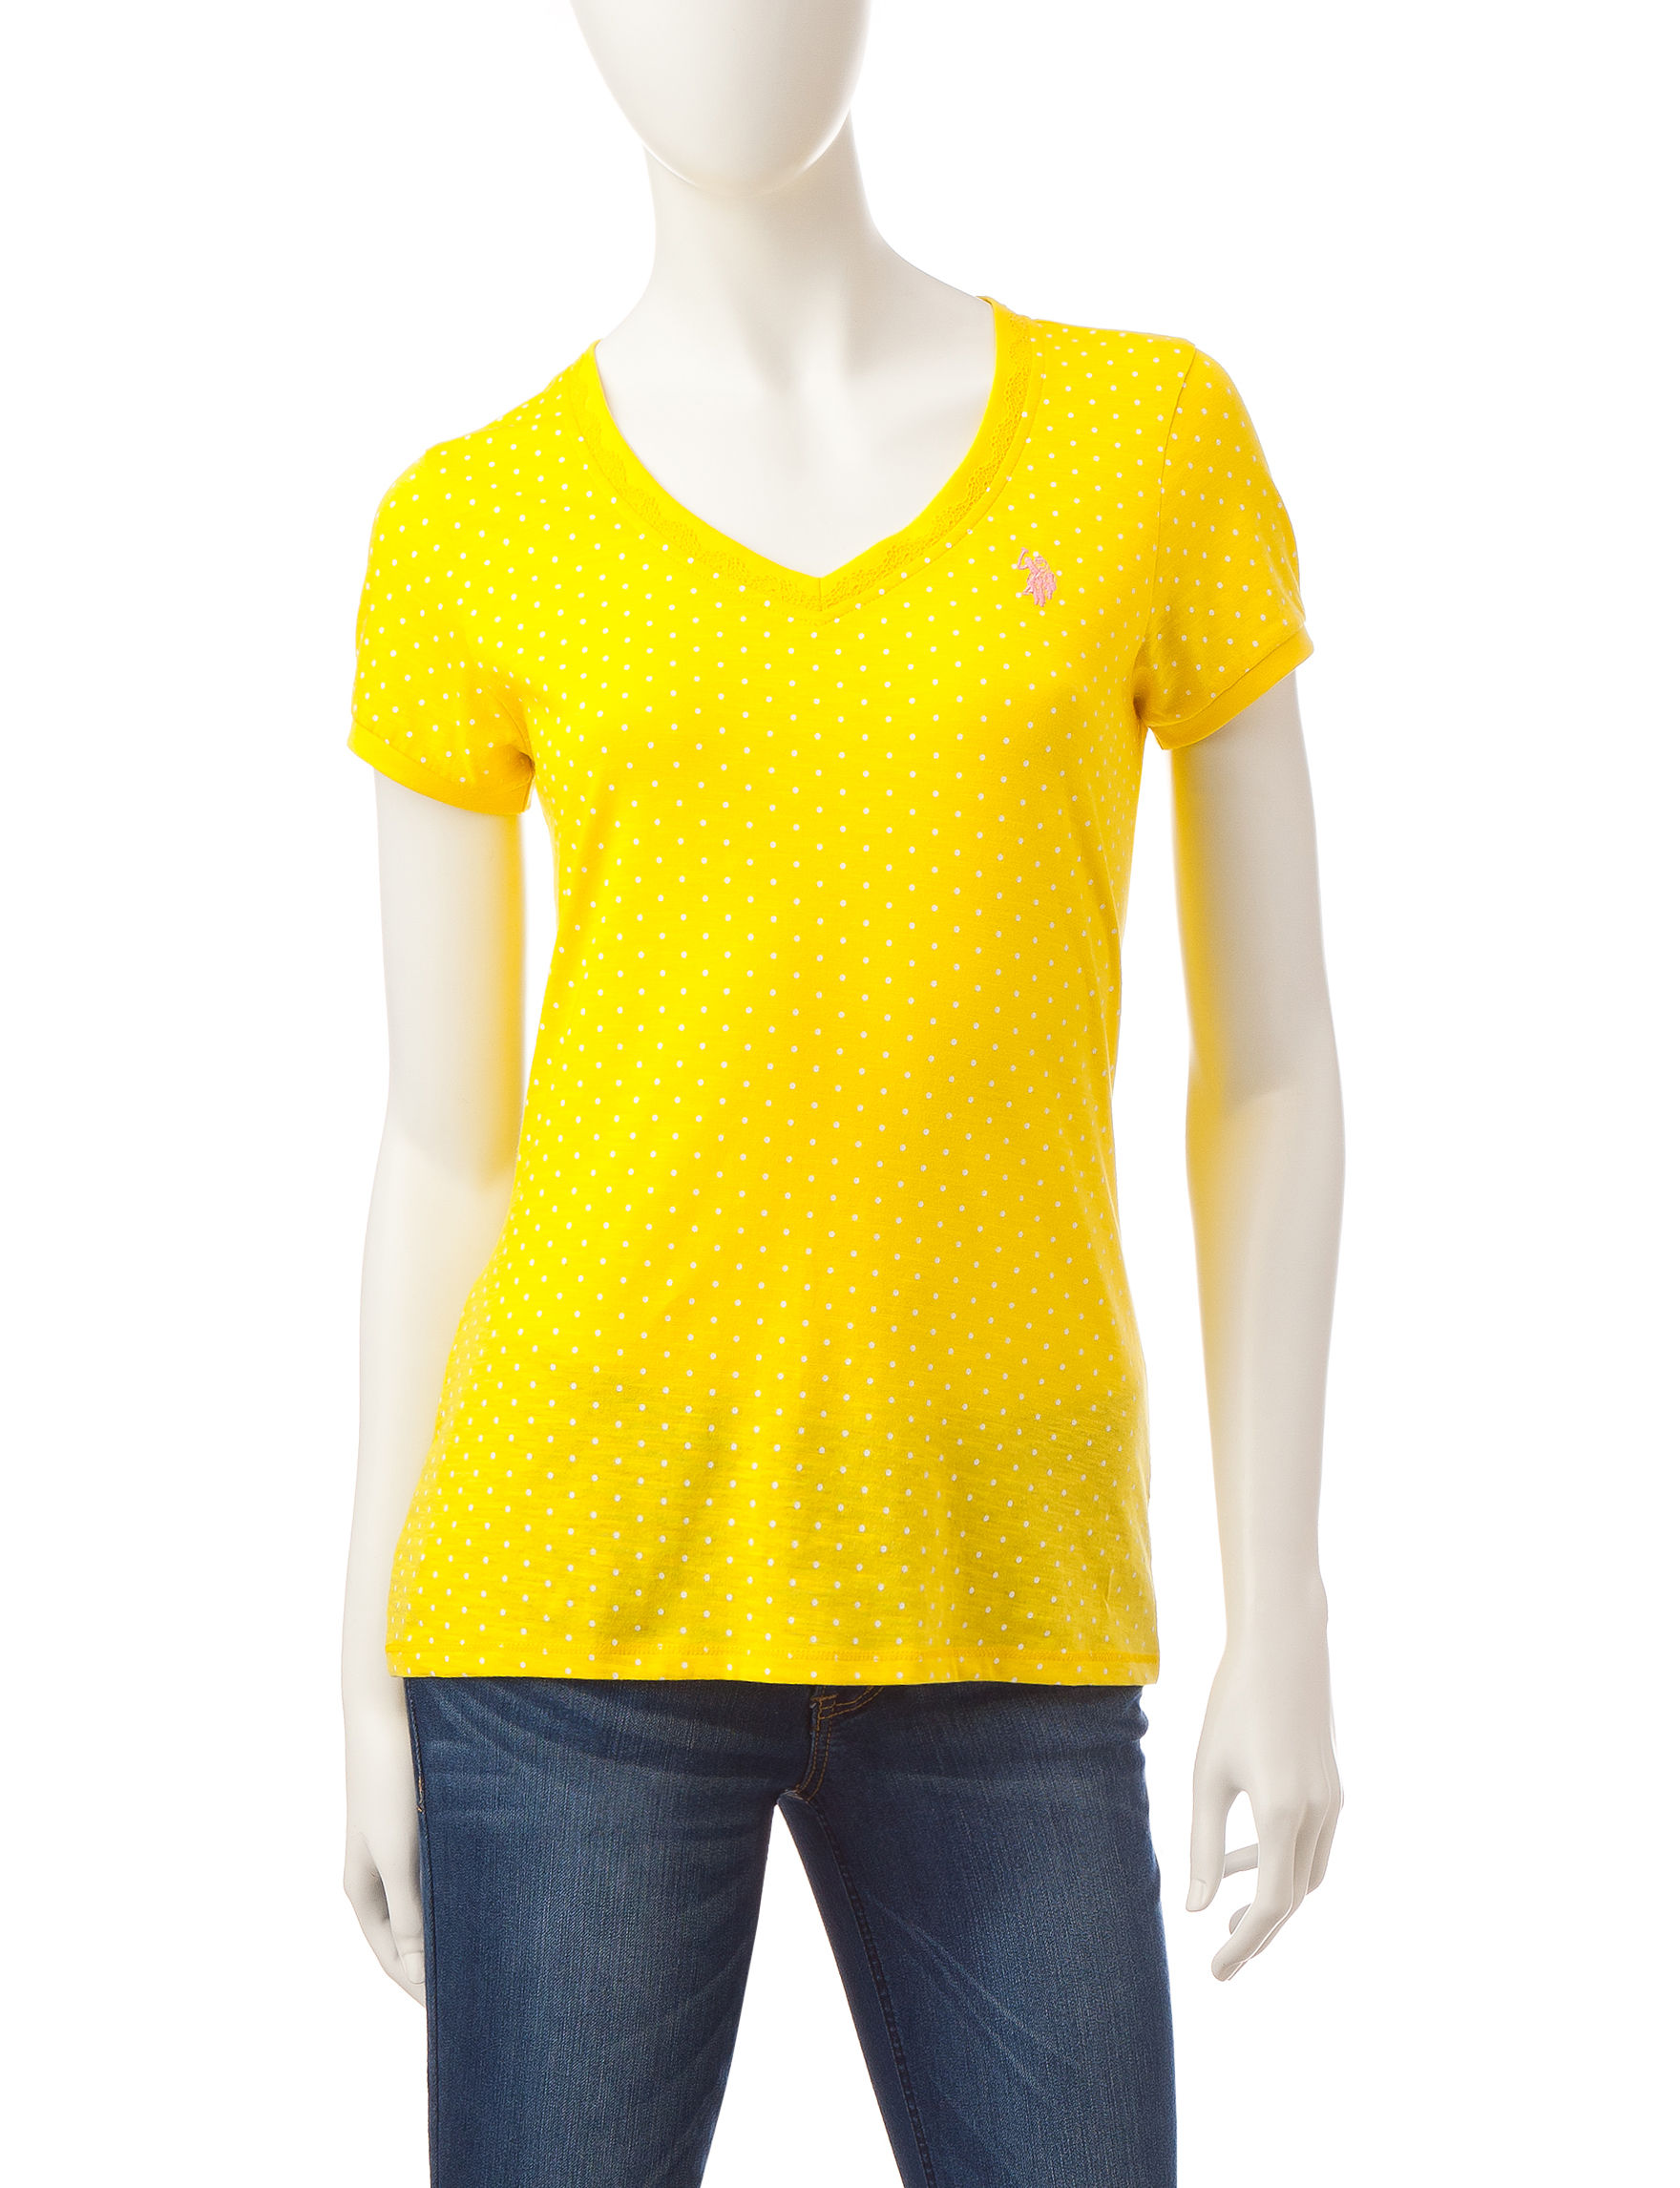 U.S. Polo Assn. Yellow Tees & Tanks